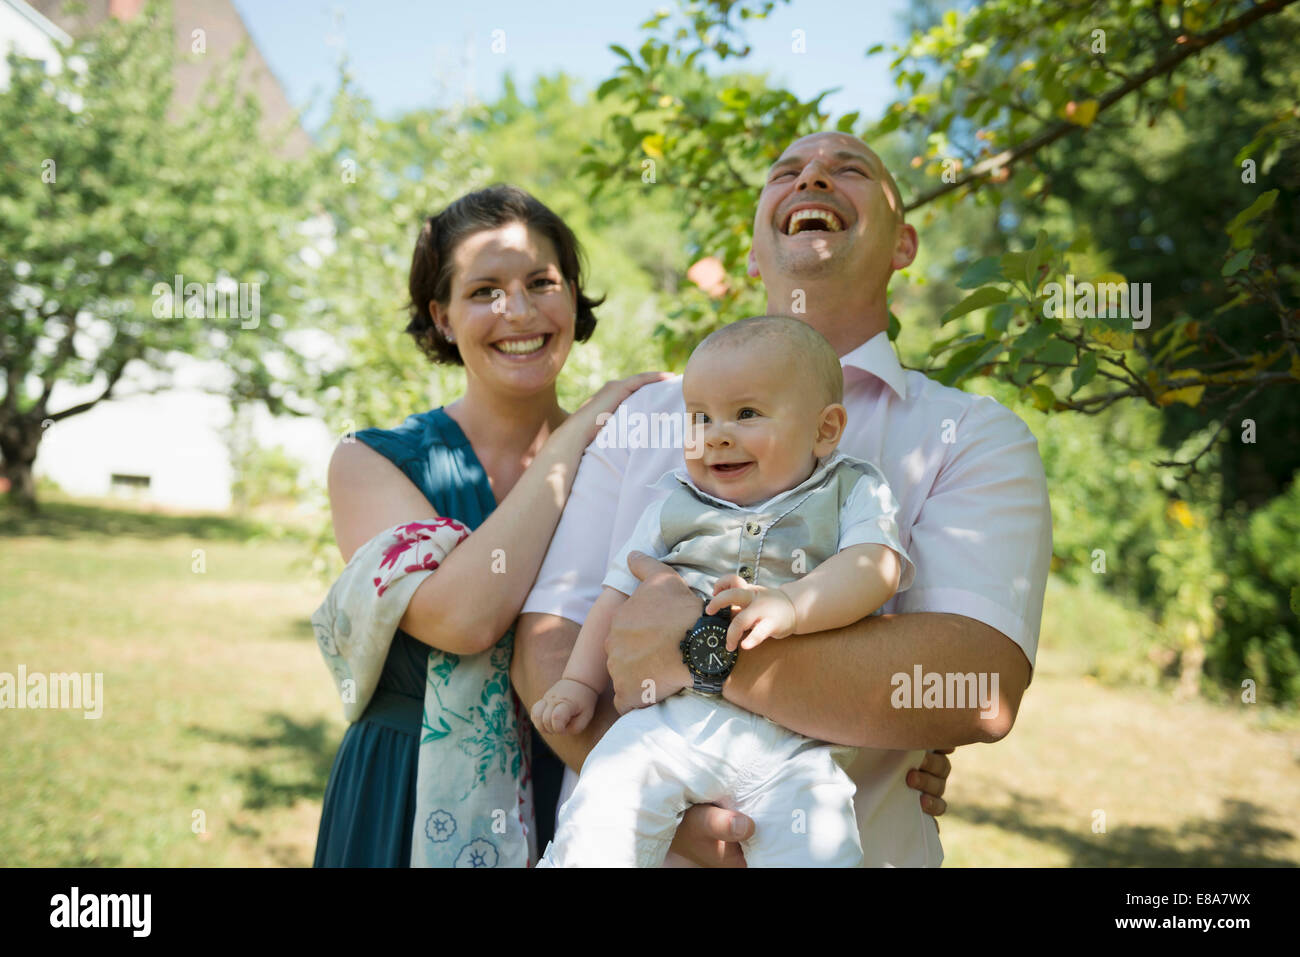 Laughing parents with smiling baby - Stock Image